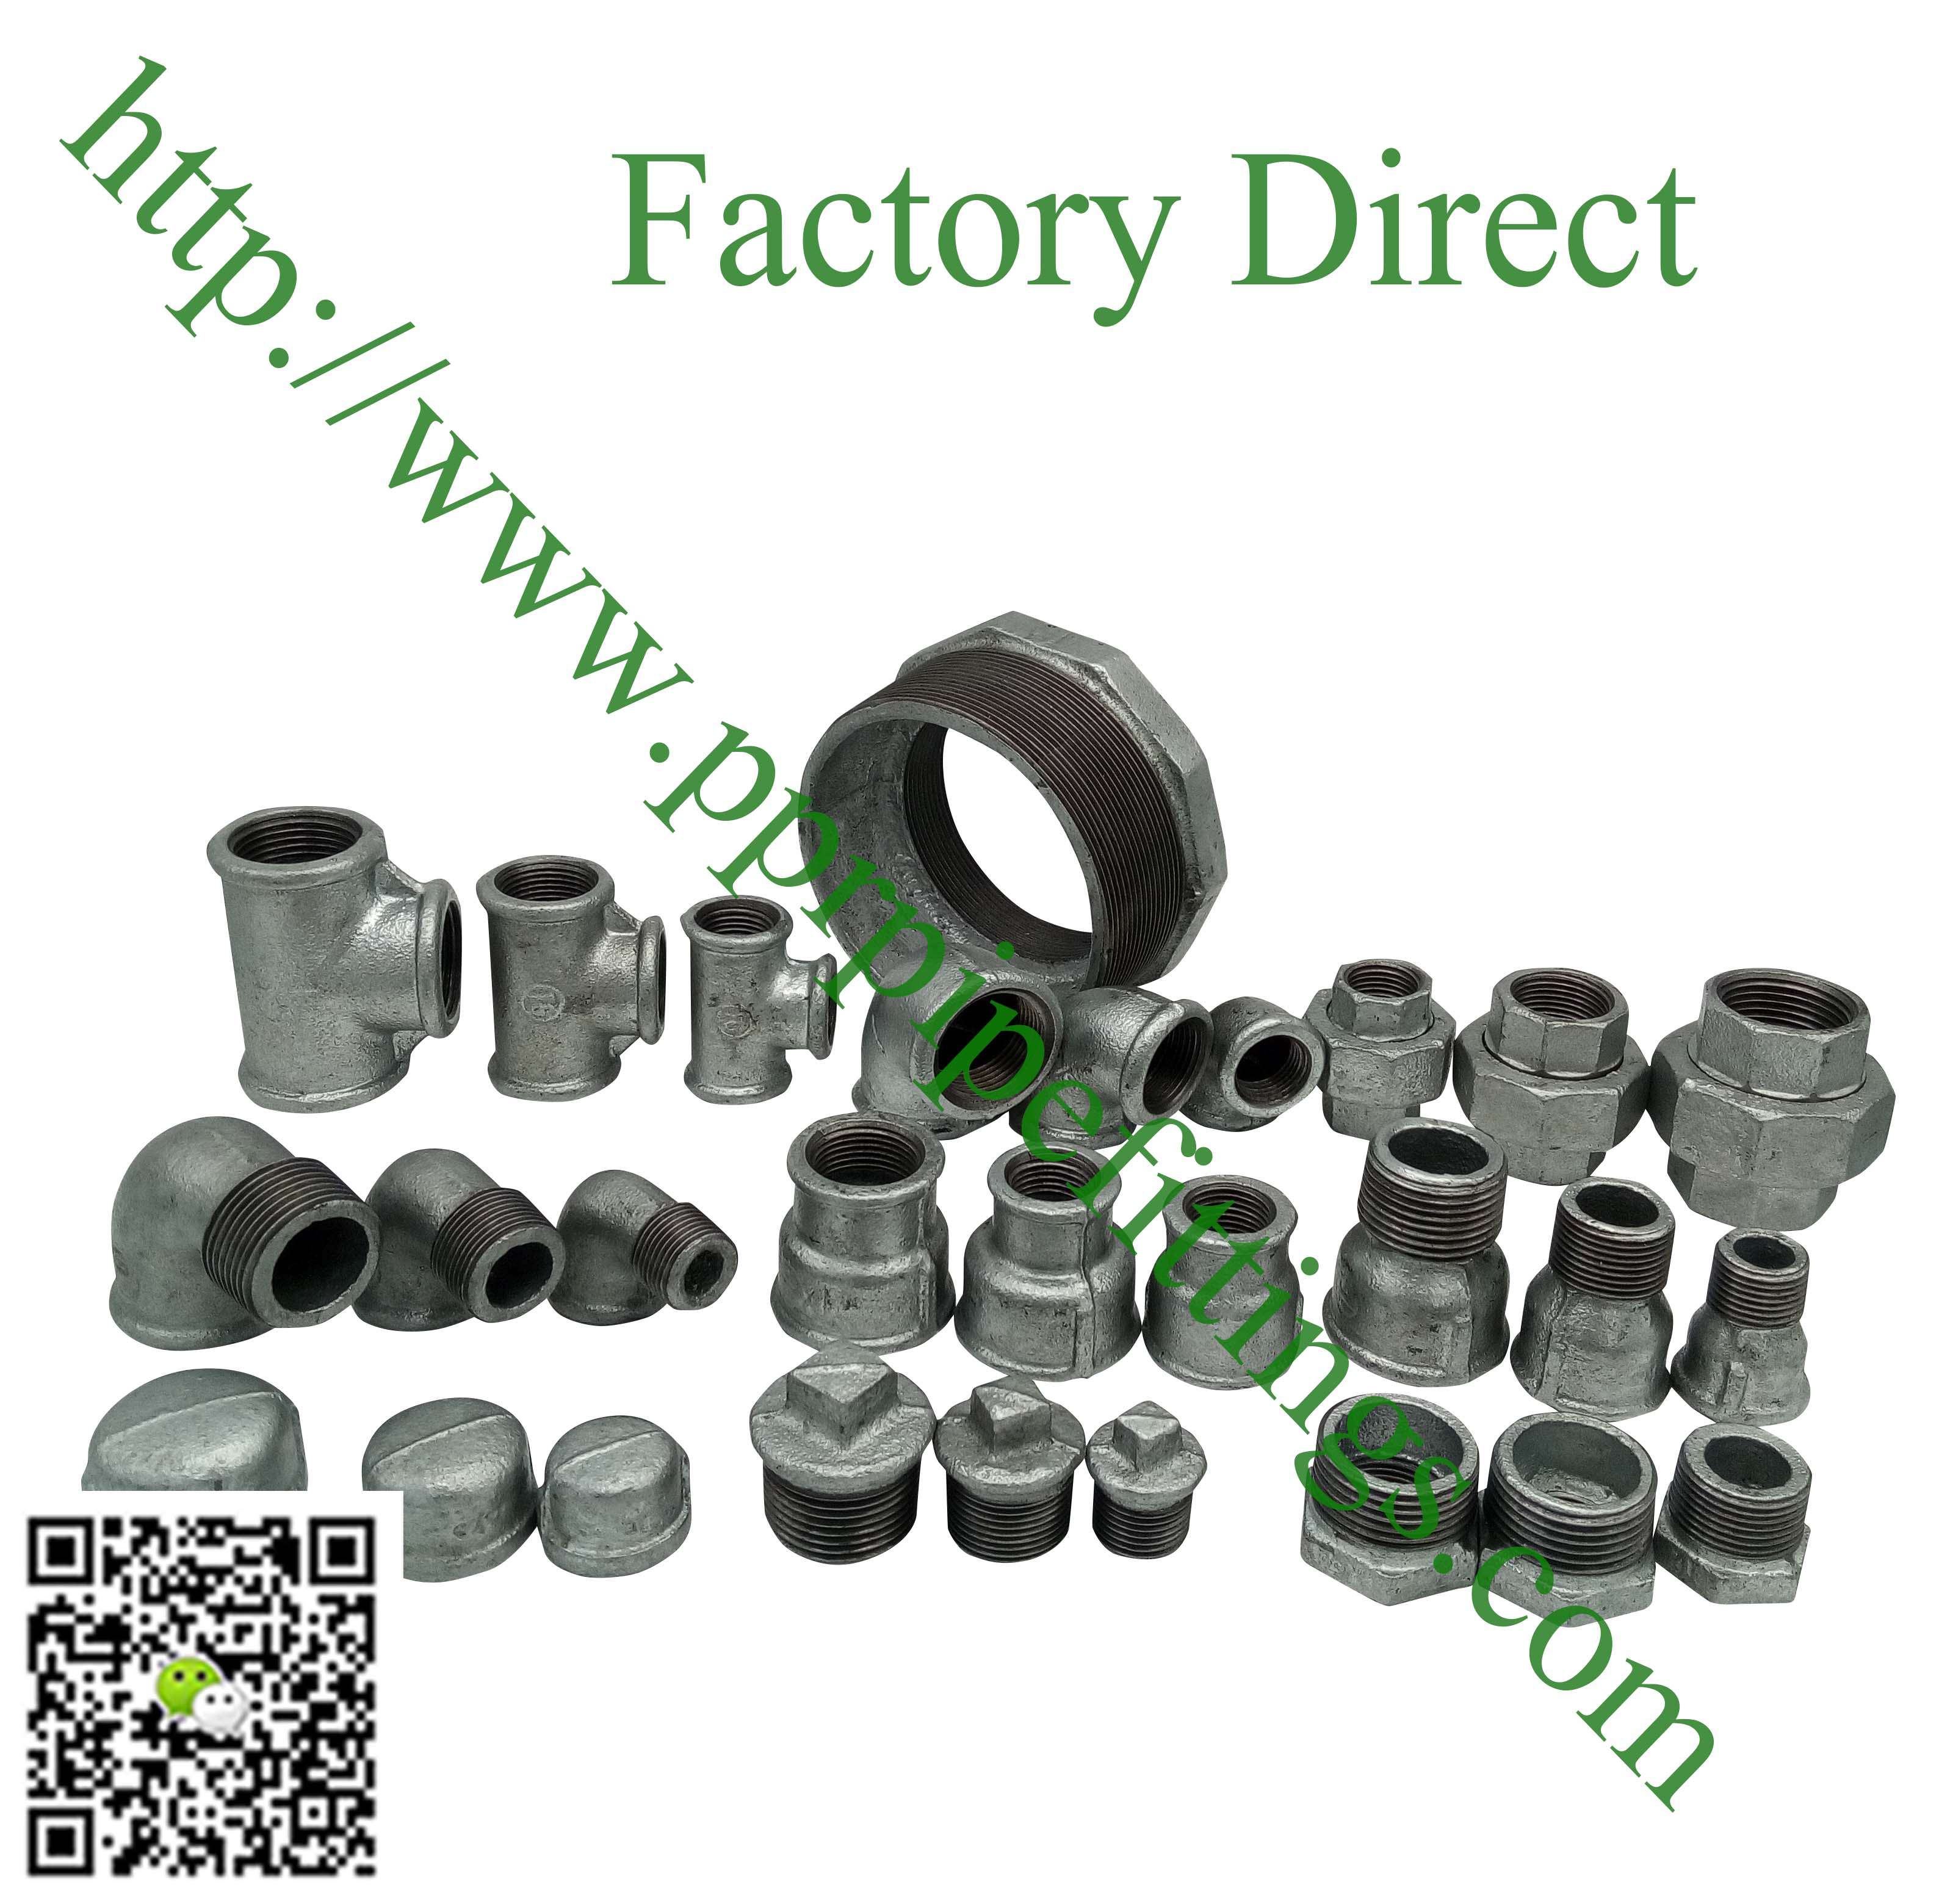 galvanized-iron-fittings